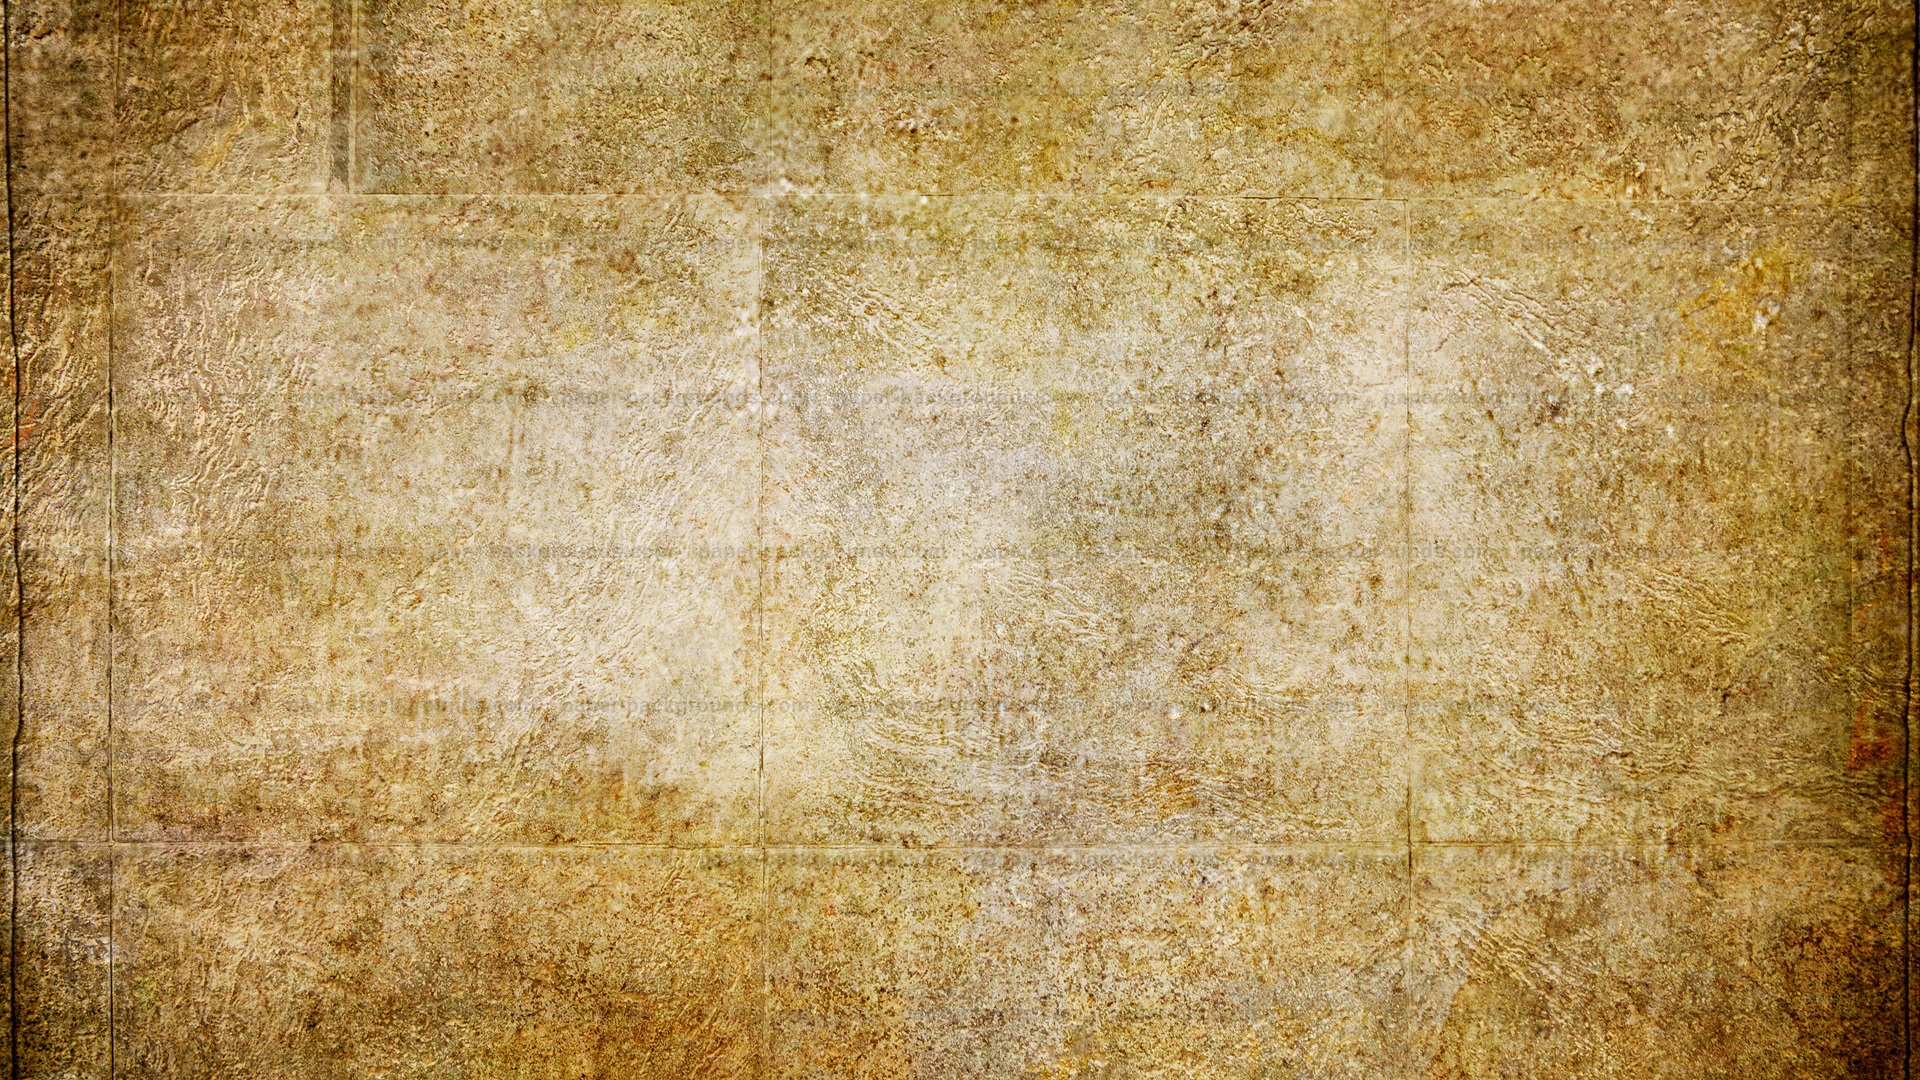 Amazing Free Colorful Grunge Textures Download: Hd Texture Backgrounds